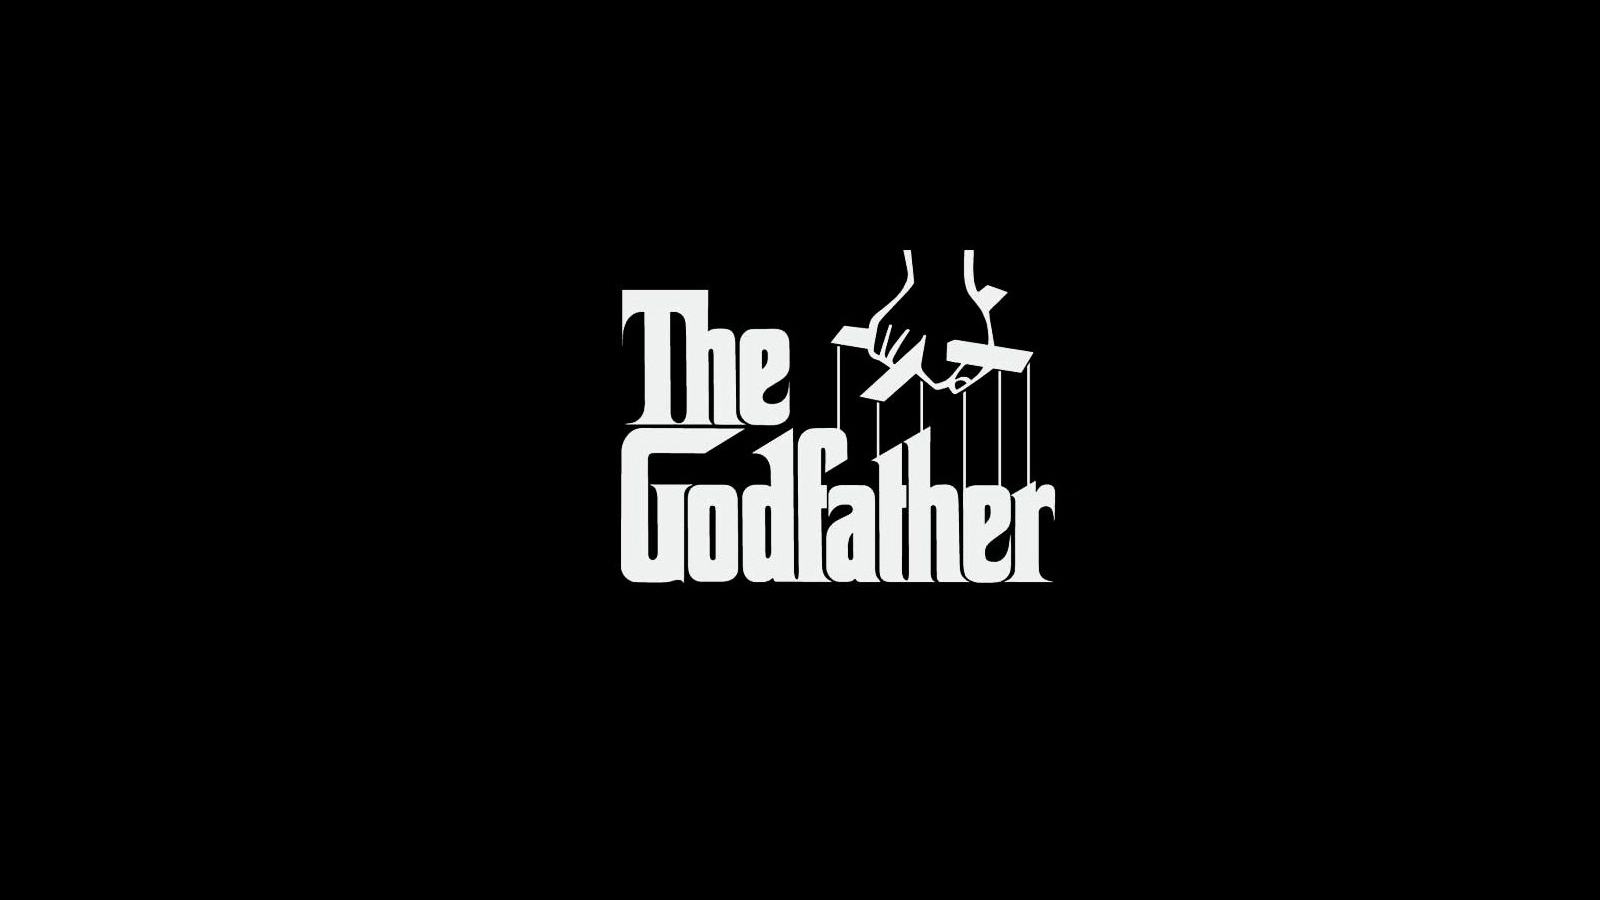 Godfather Wallpaper Iphone X The Godfather Wallpaper And Background Image 1600x900